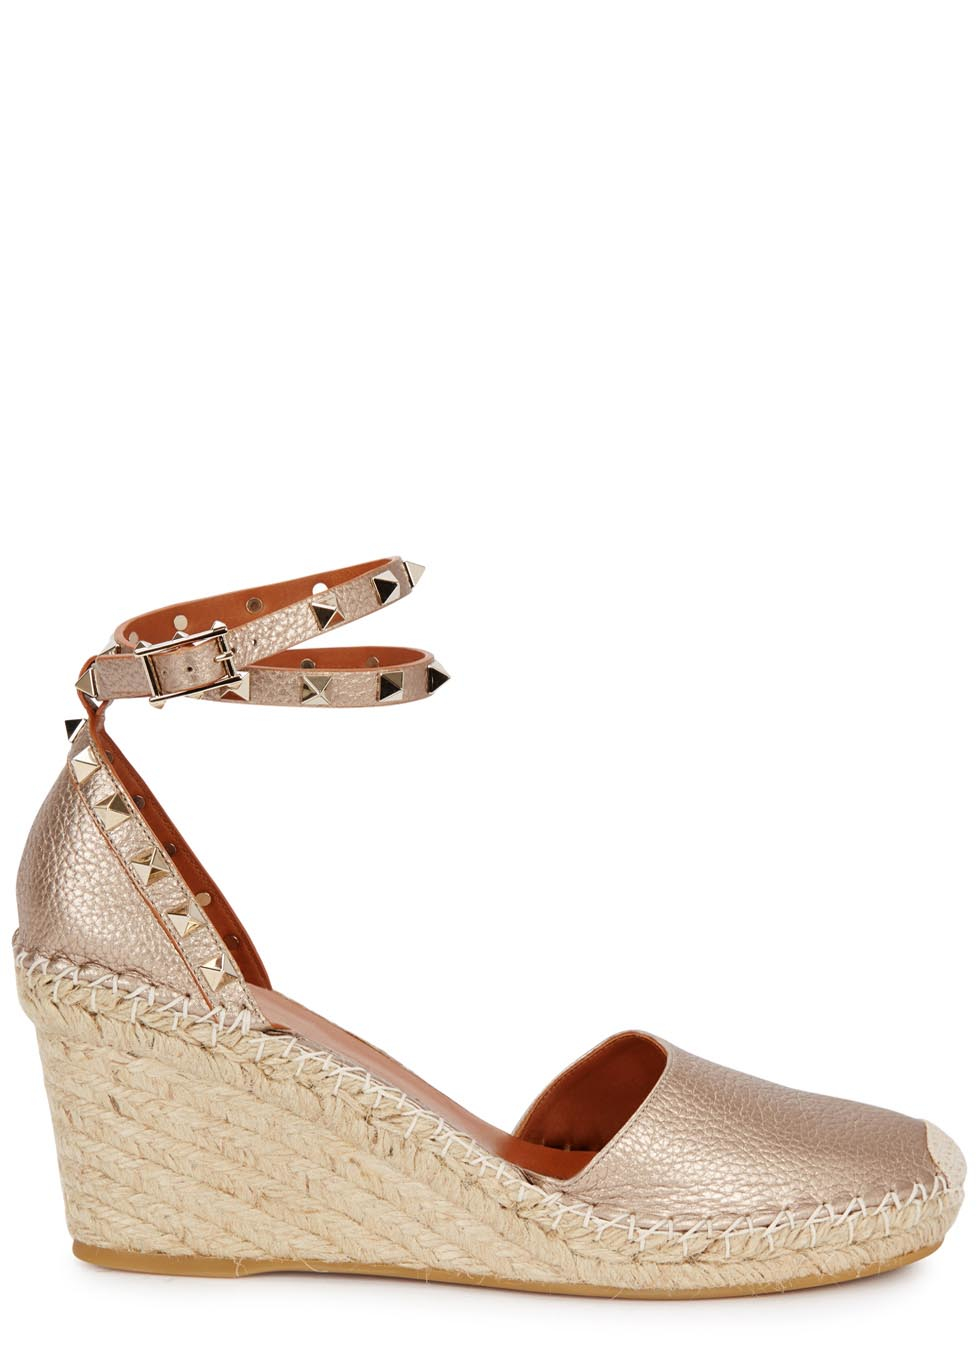 Valentino Metallic Espadrille Wedges free shipping Inexpensive outlet store locations 23aRvGIIq